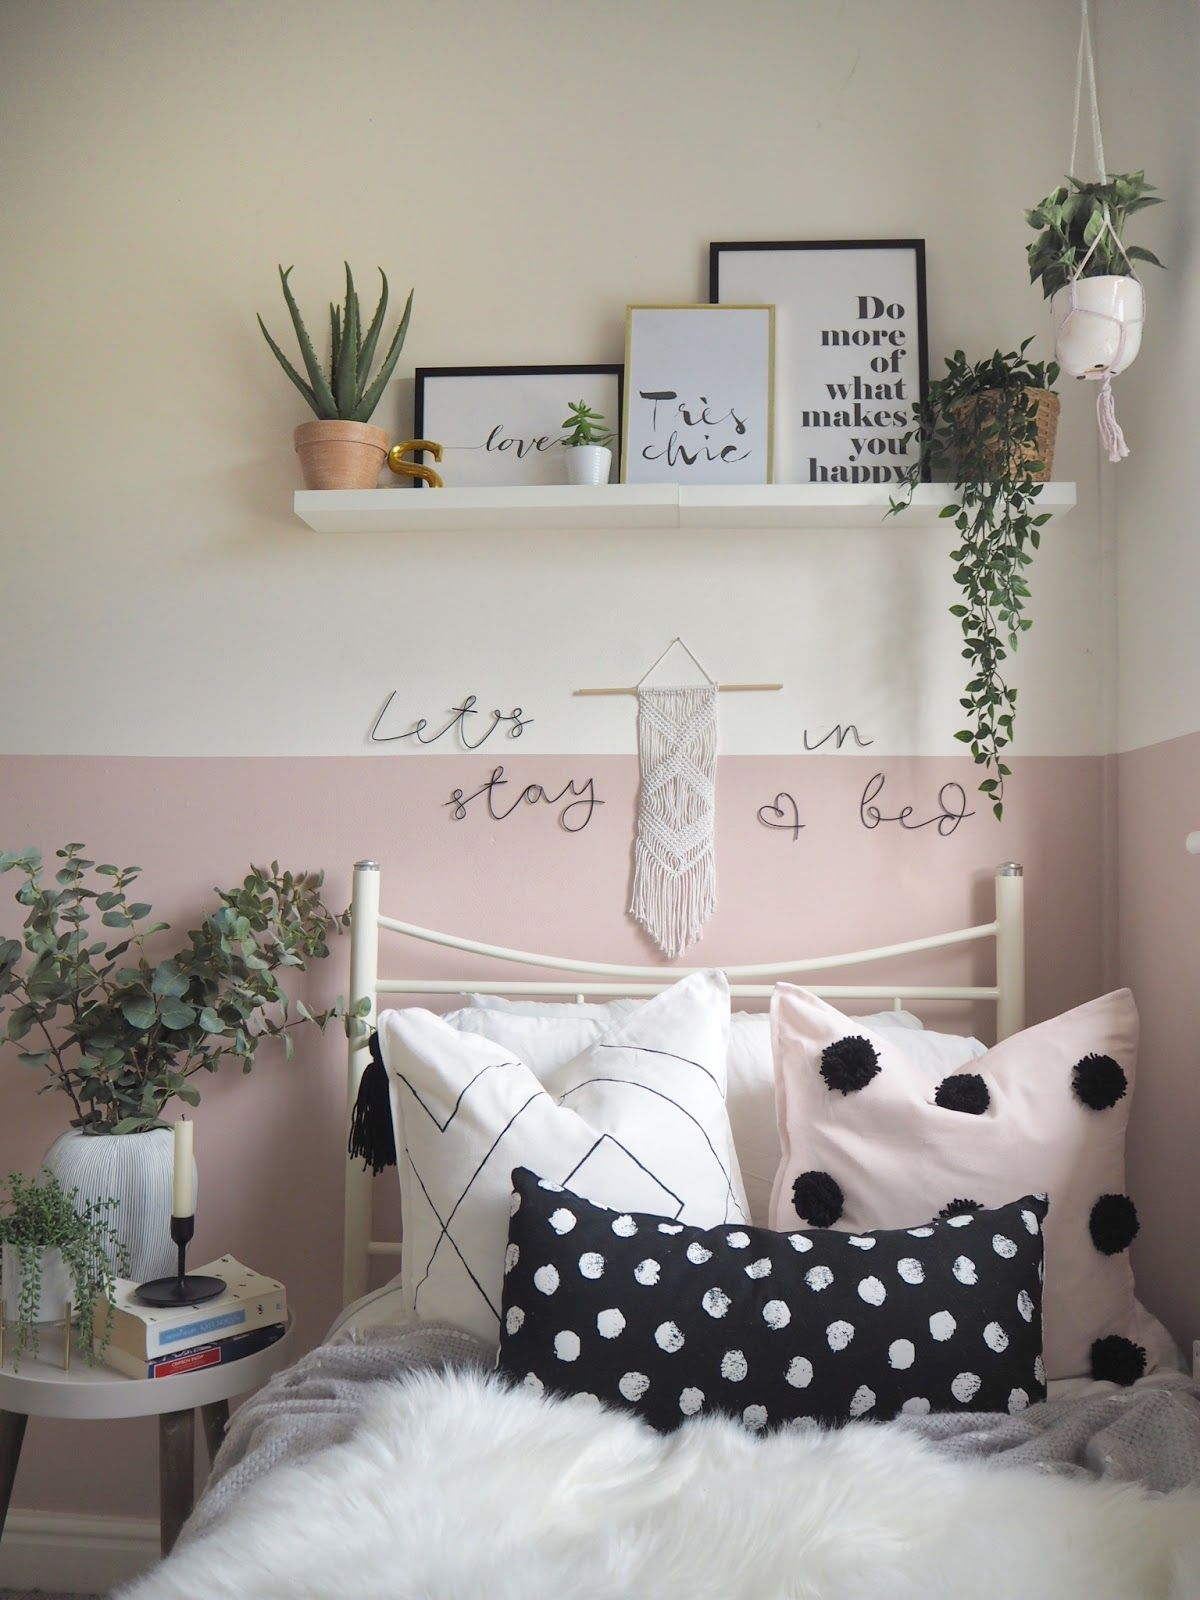 How to transform a room with halfpainted walls in 2020